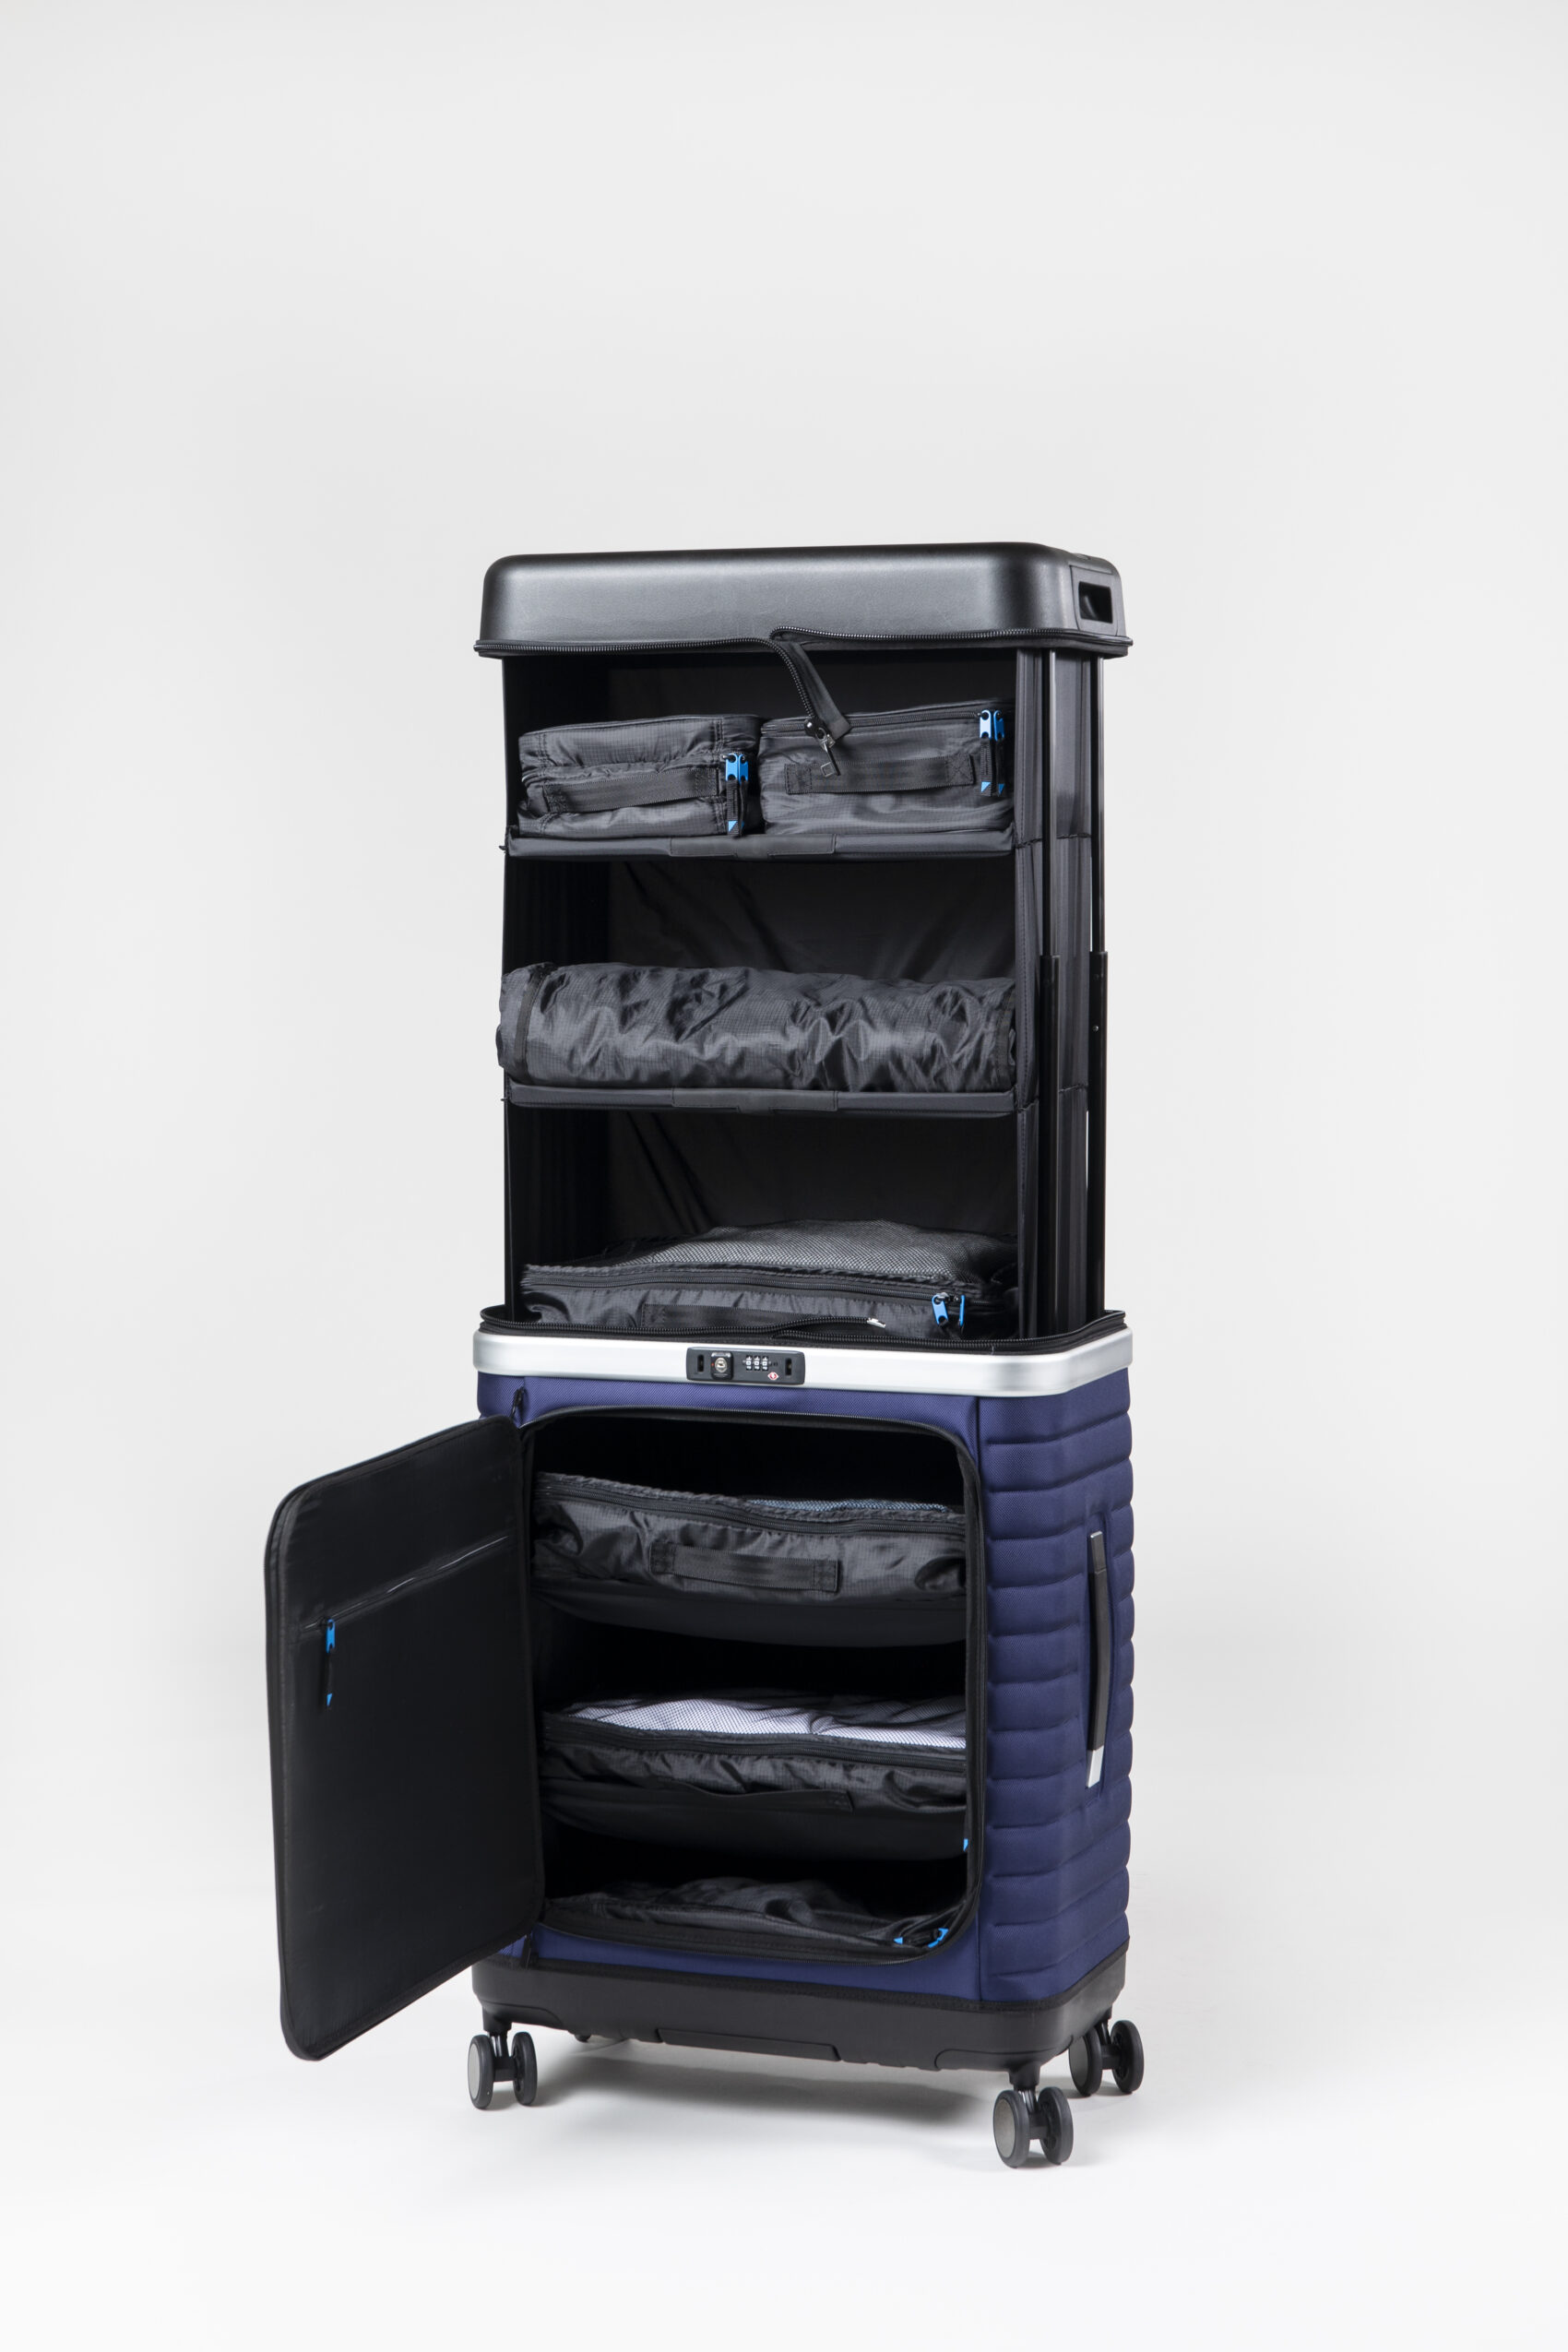 Crowdfunding Starts For Pull Up Suitcase That Converts